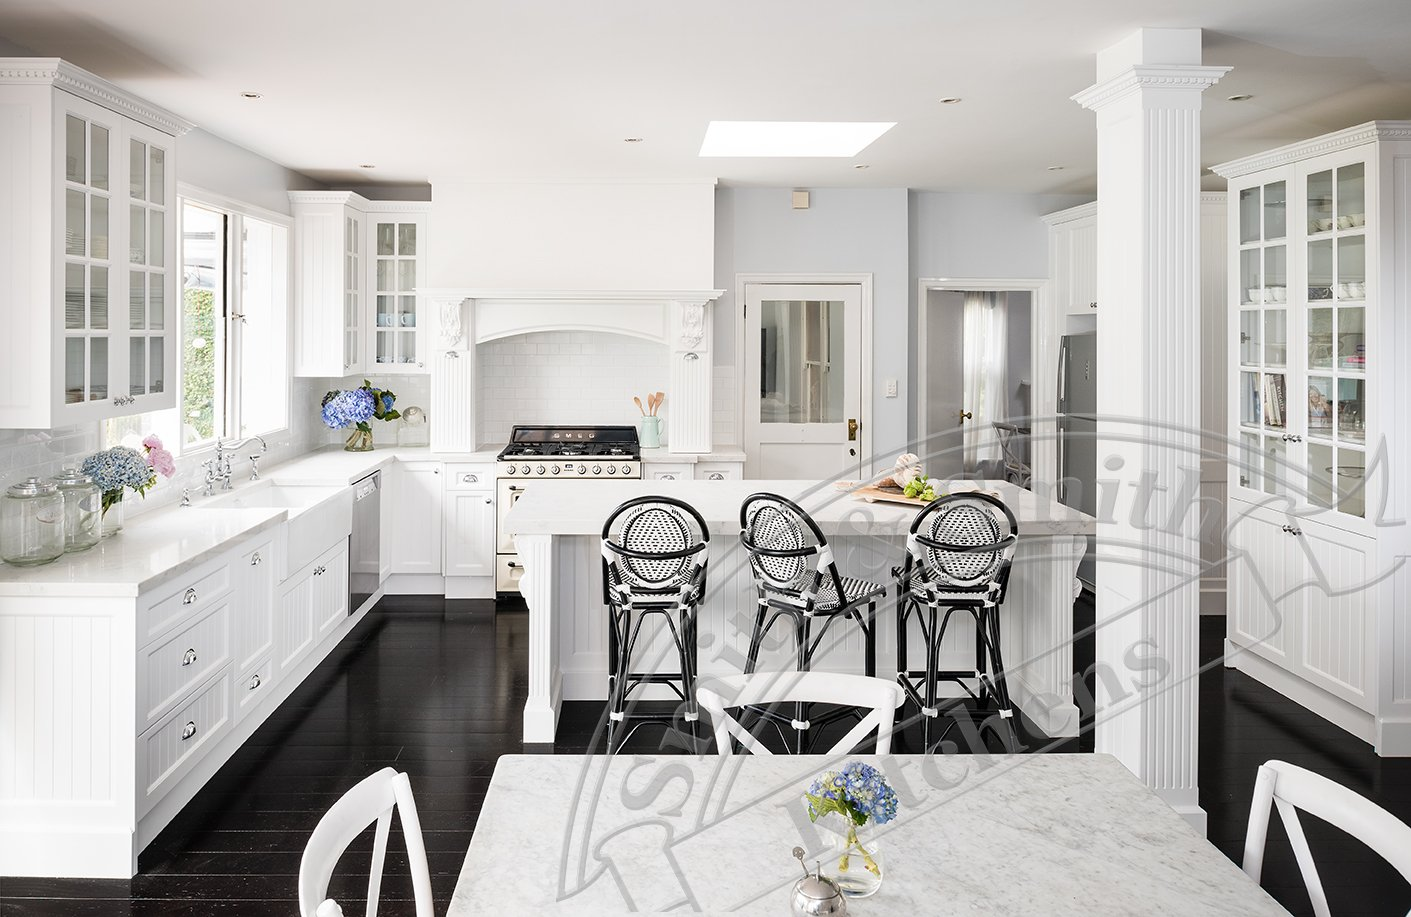 French Provincial Kitchen - black and white